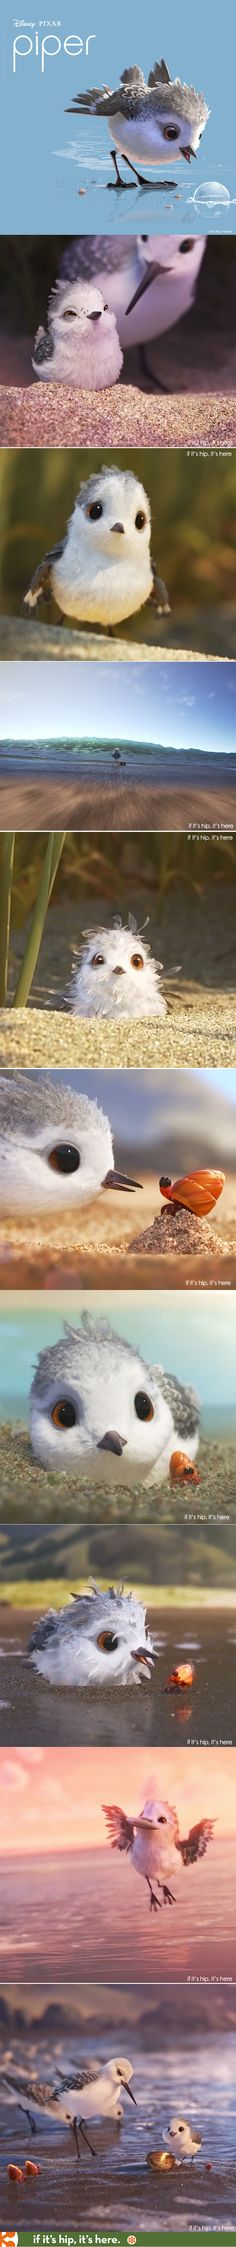 Pixar\'s Piper is 6 minutes of adorable. See the film in its entirety at the link.